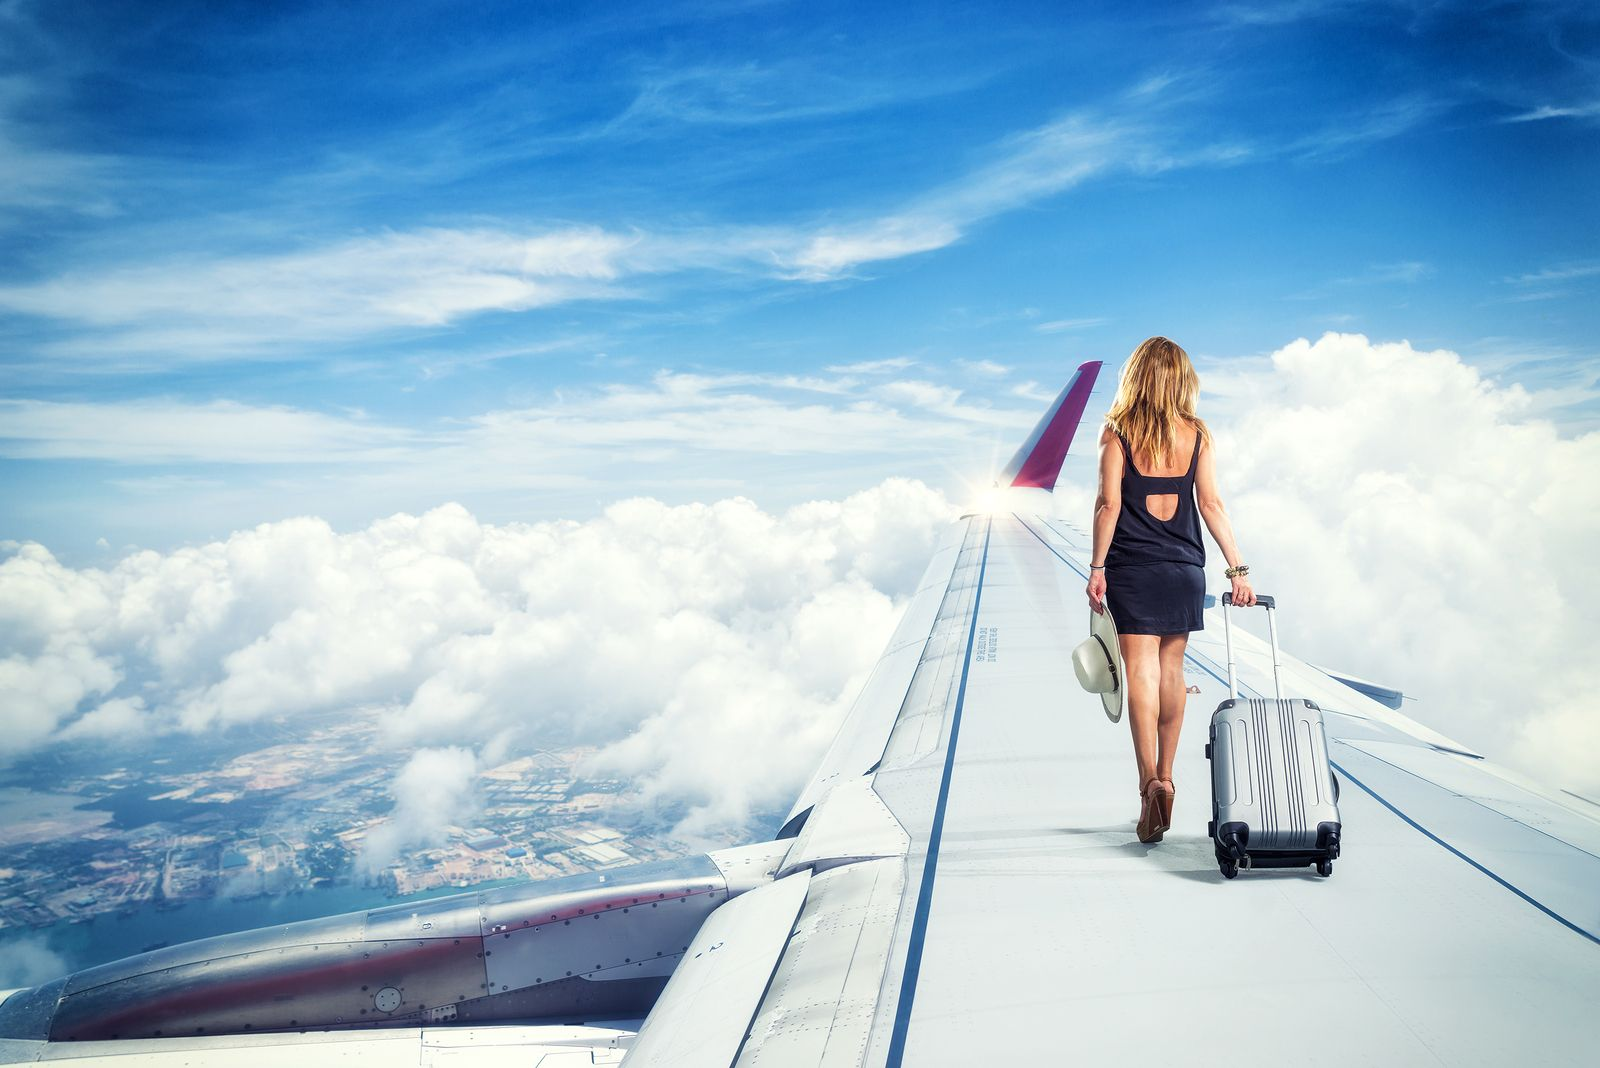 Do you want to fulfill your wanderlust desire but high